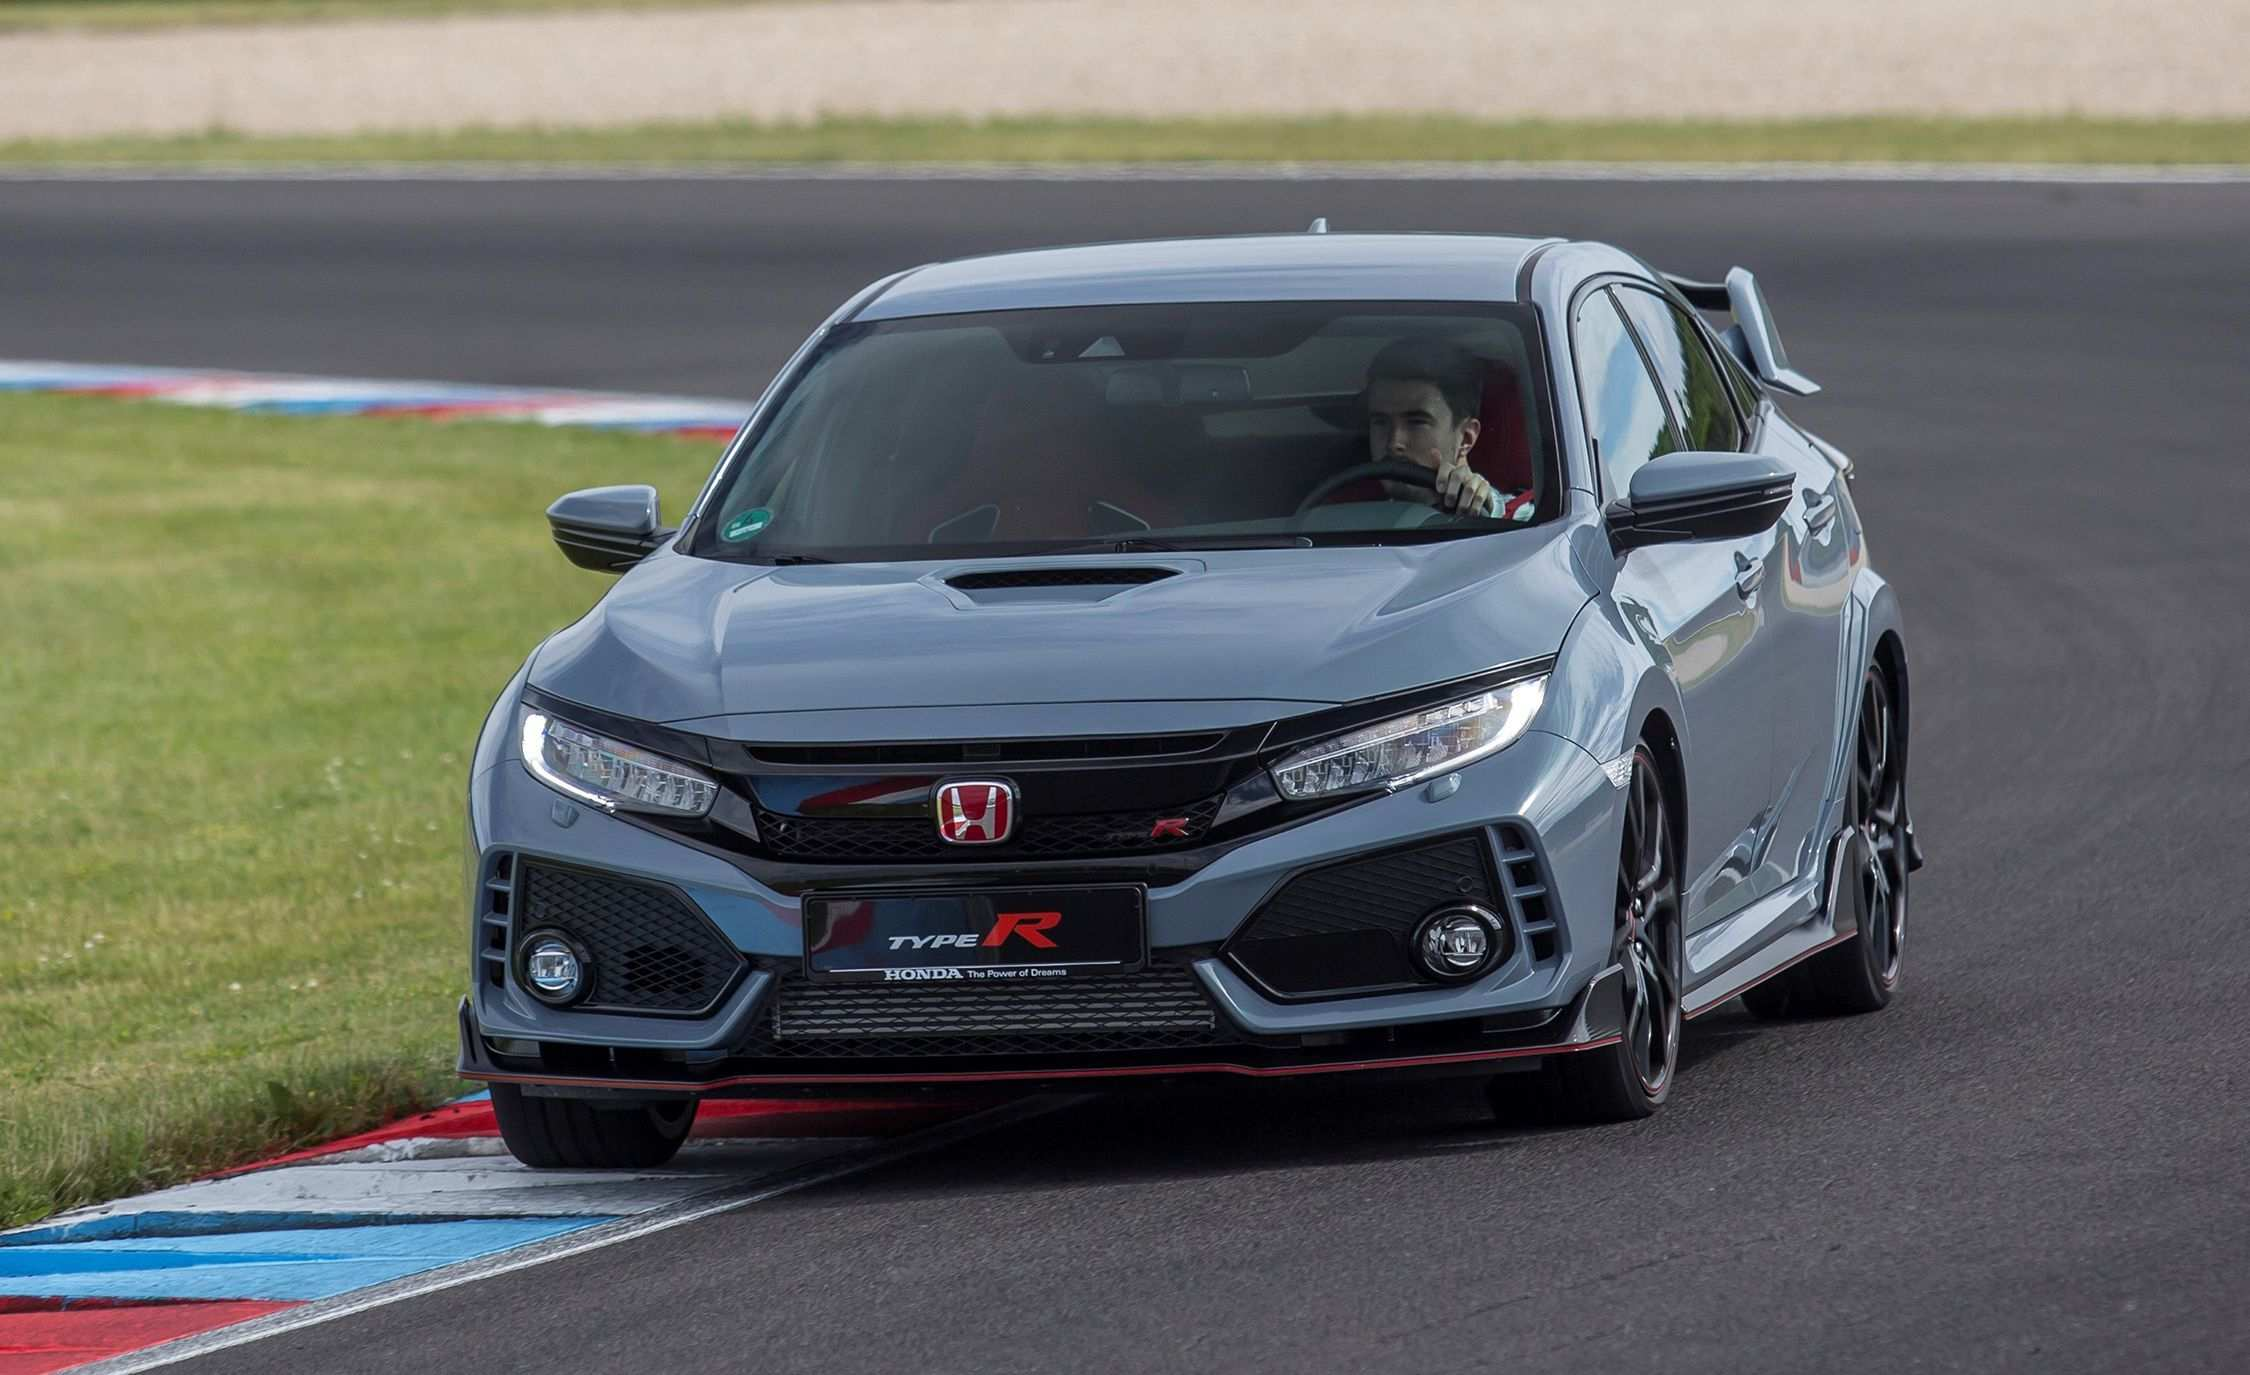 62 Great New Honda Type R 2019 Release Date Review And Release Date Spesification by New Honda Type R 2019 Release Date Review And Release Date